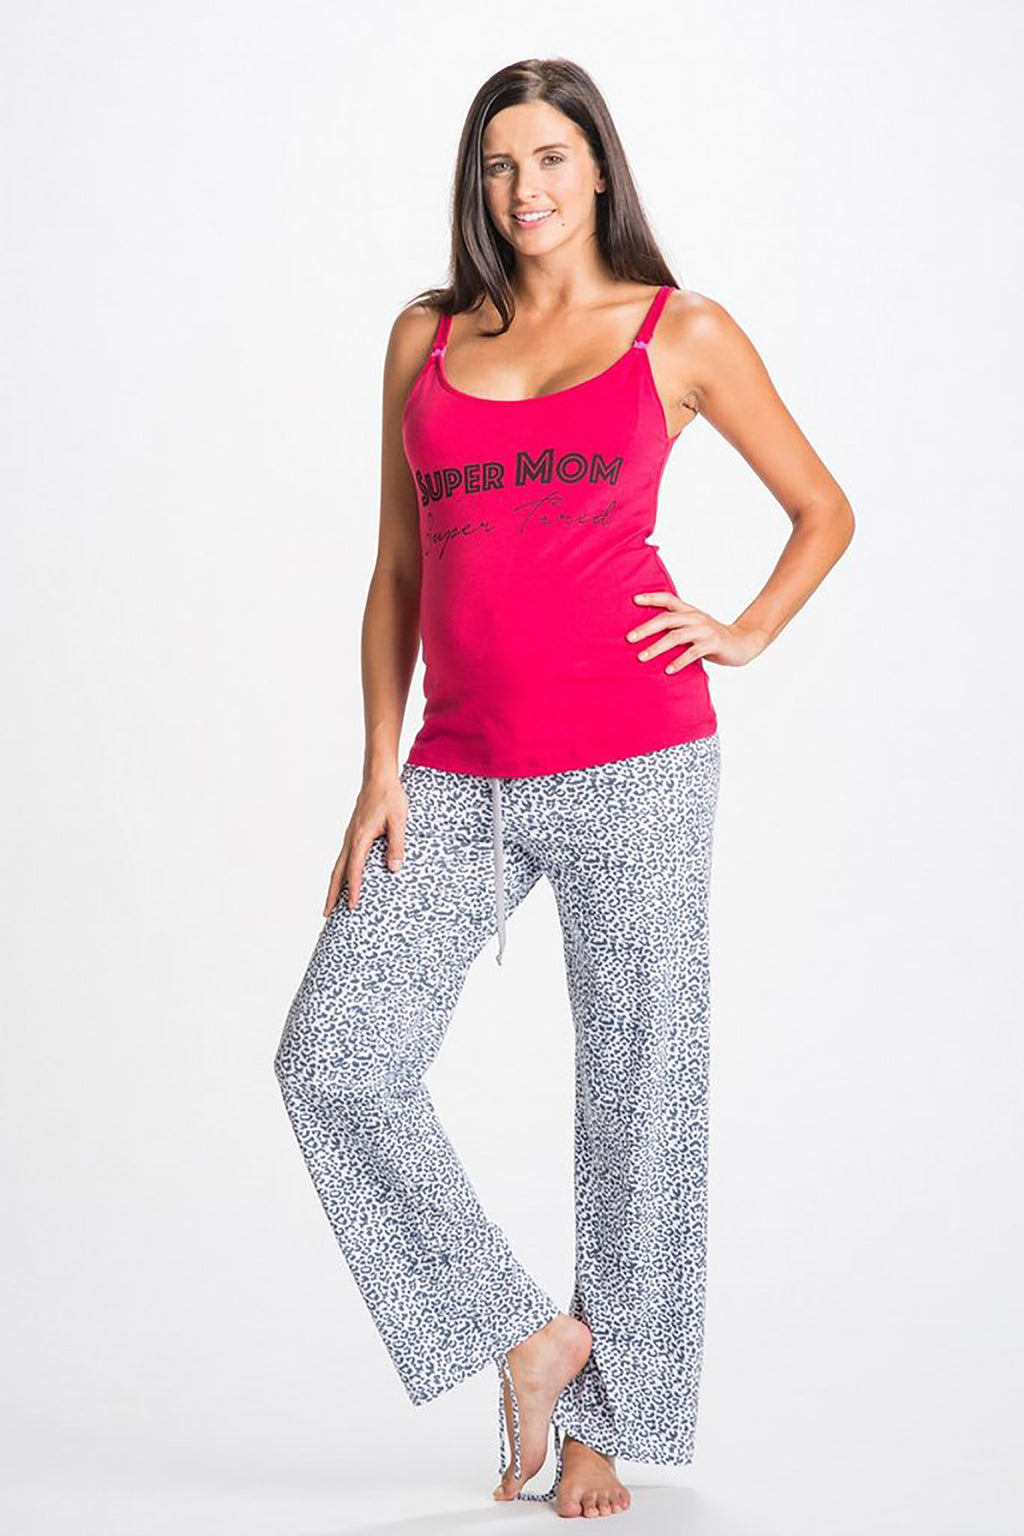 Rosette Super Mom Super Tired Maternity & Nursing Pajama Set - Mommylicious